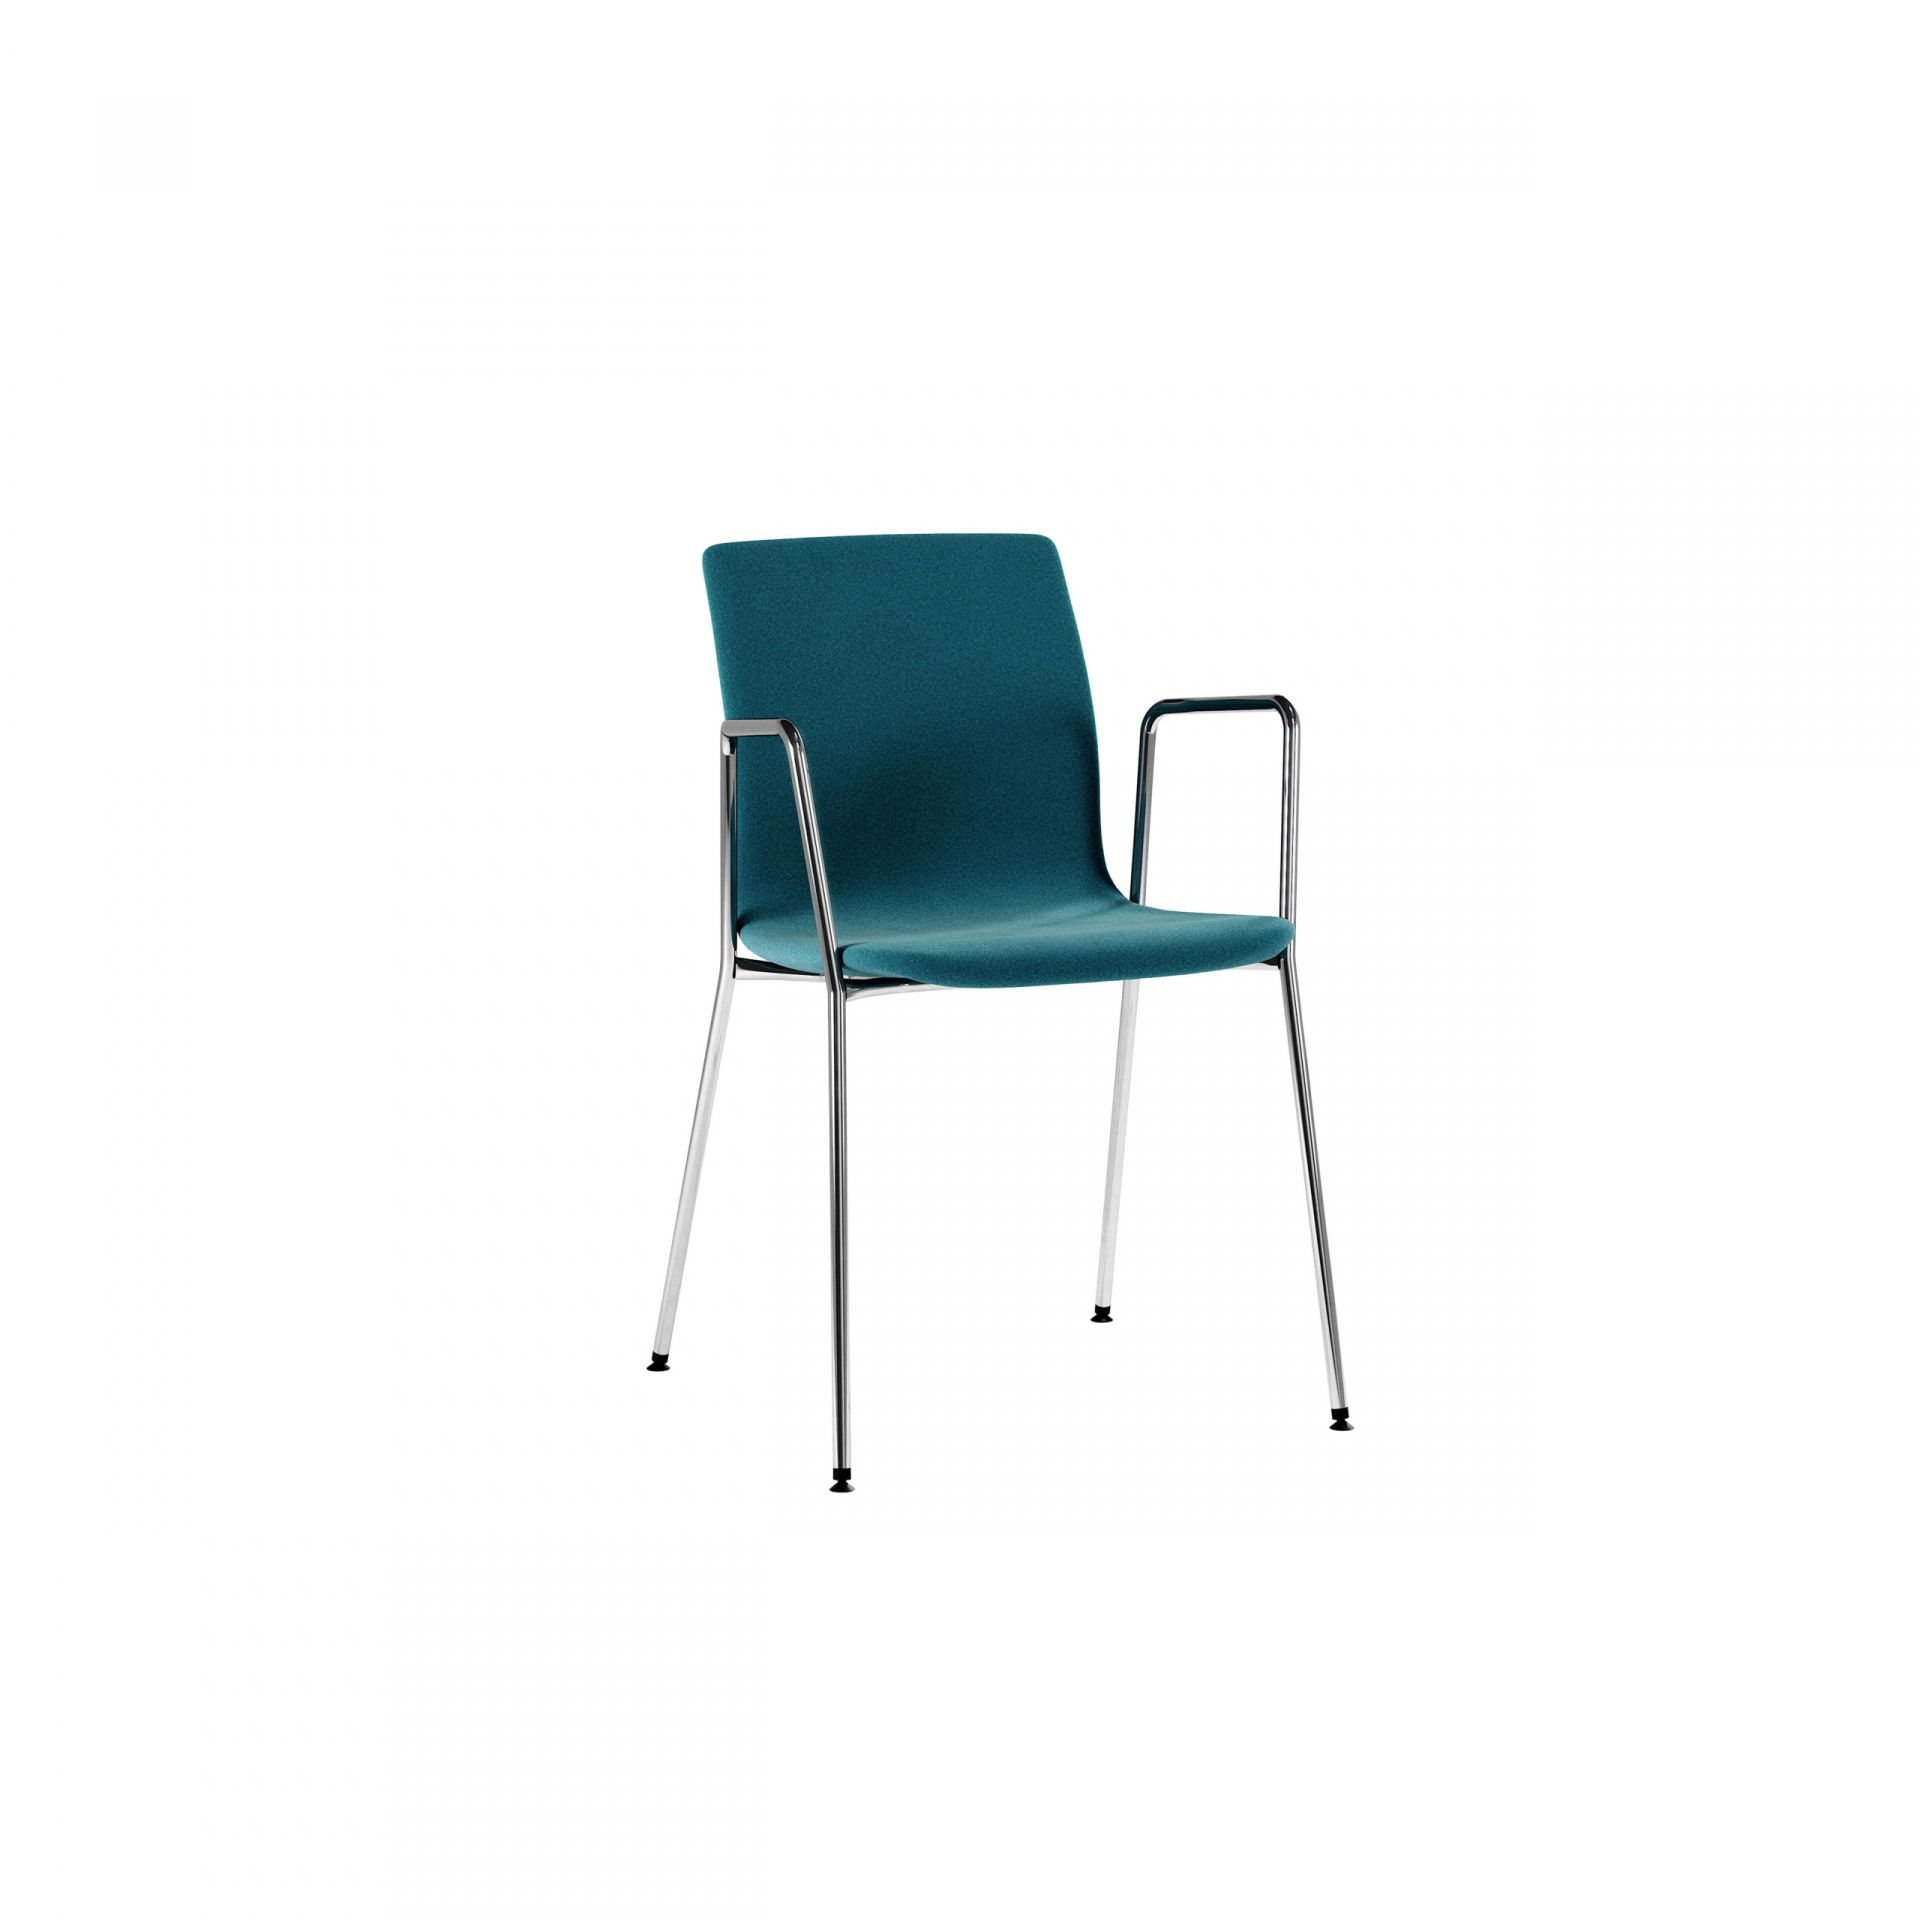 Nova Chair with metal legs product image 3